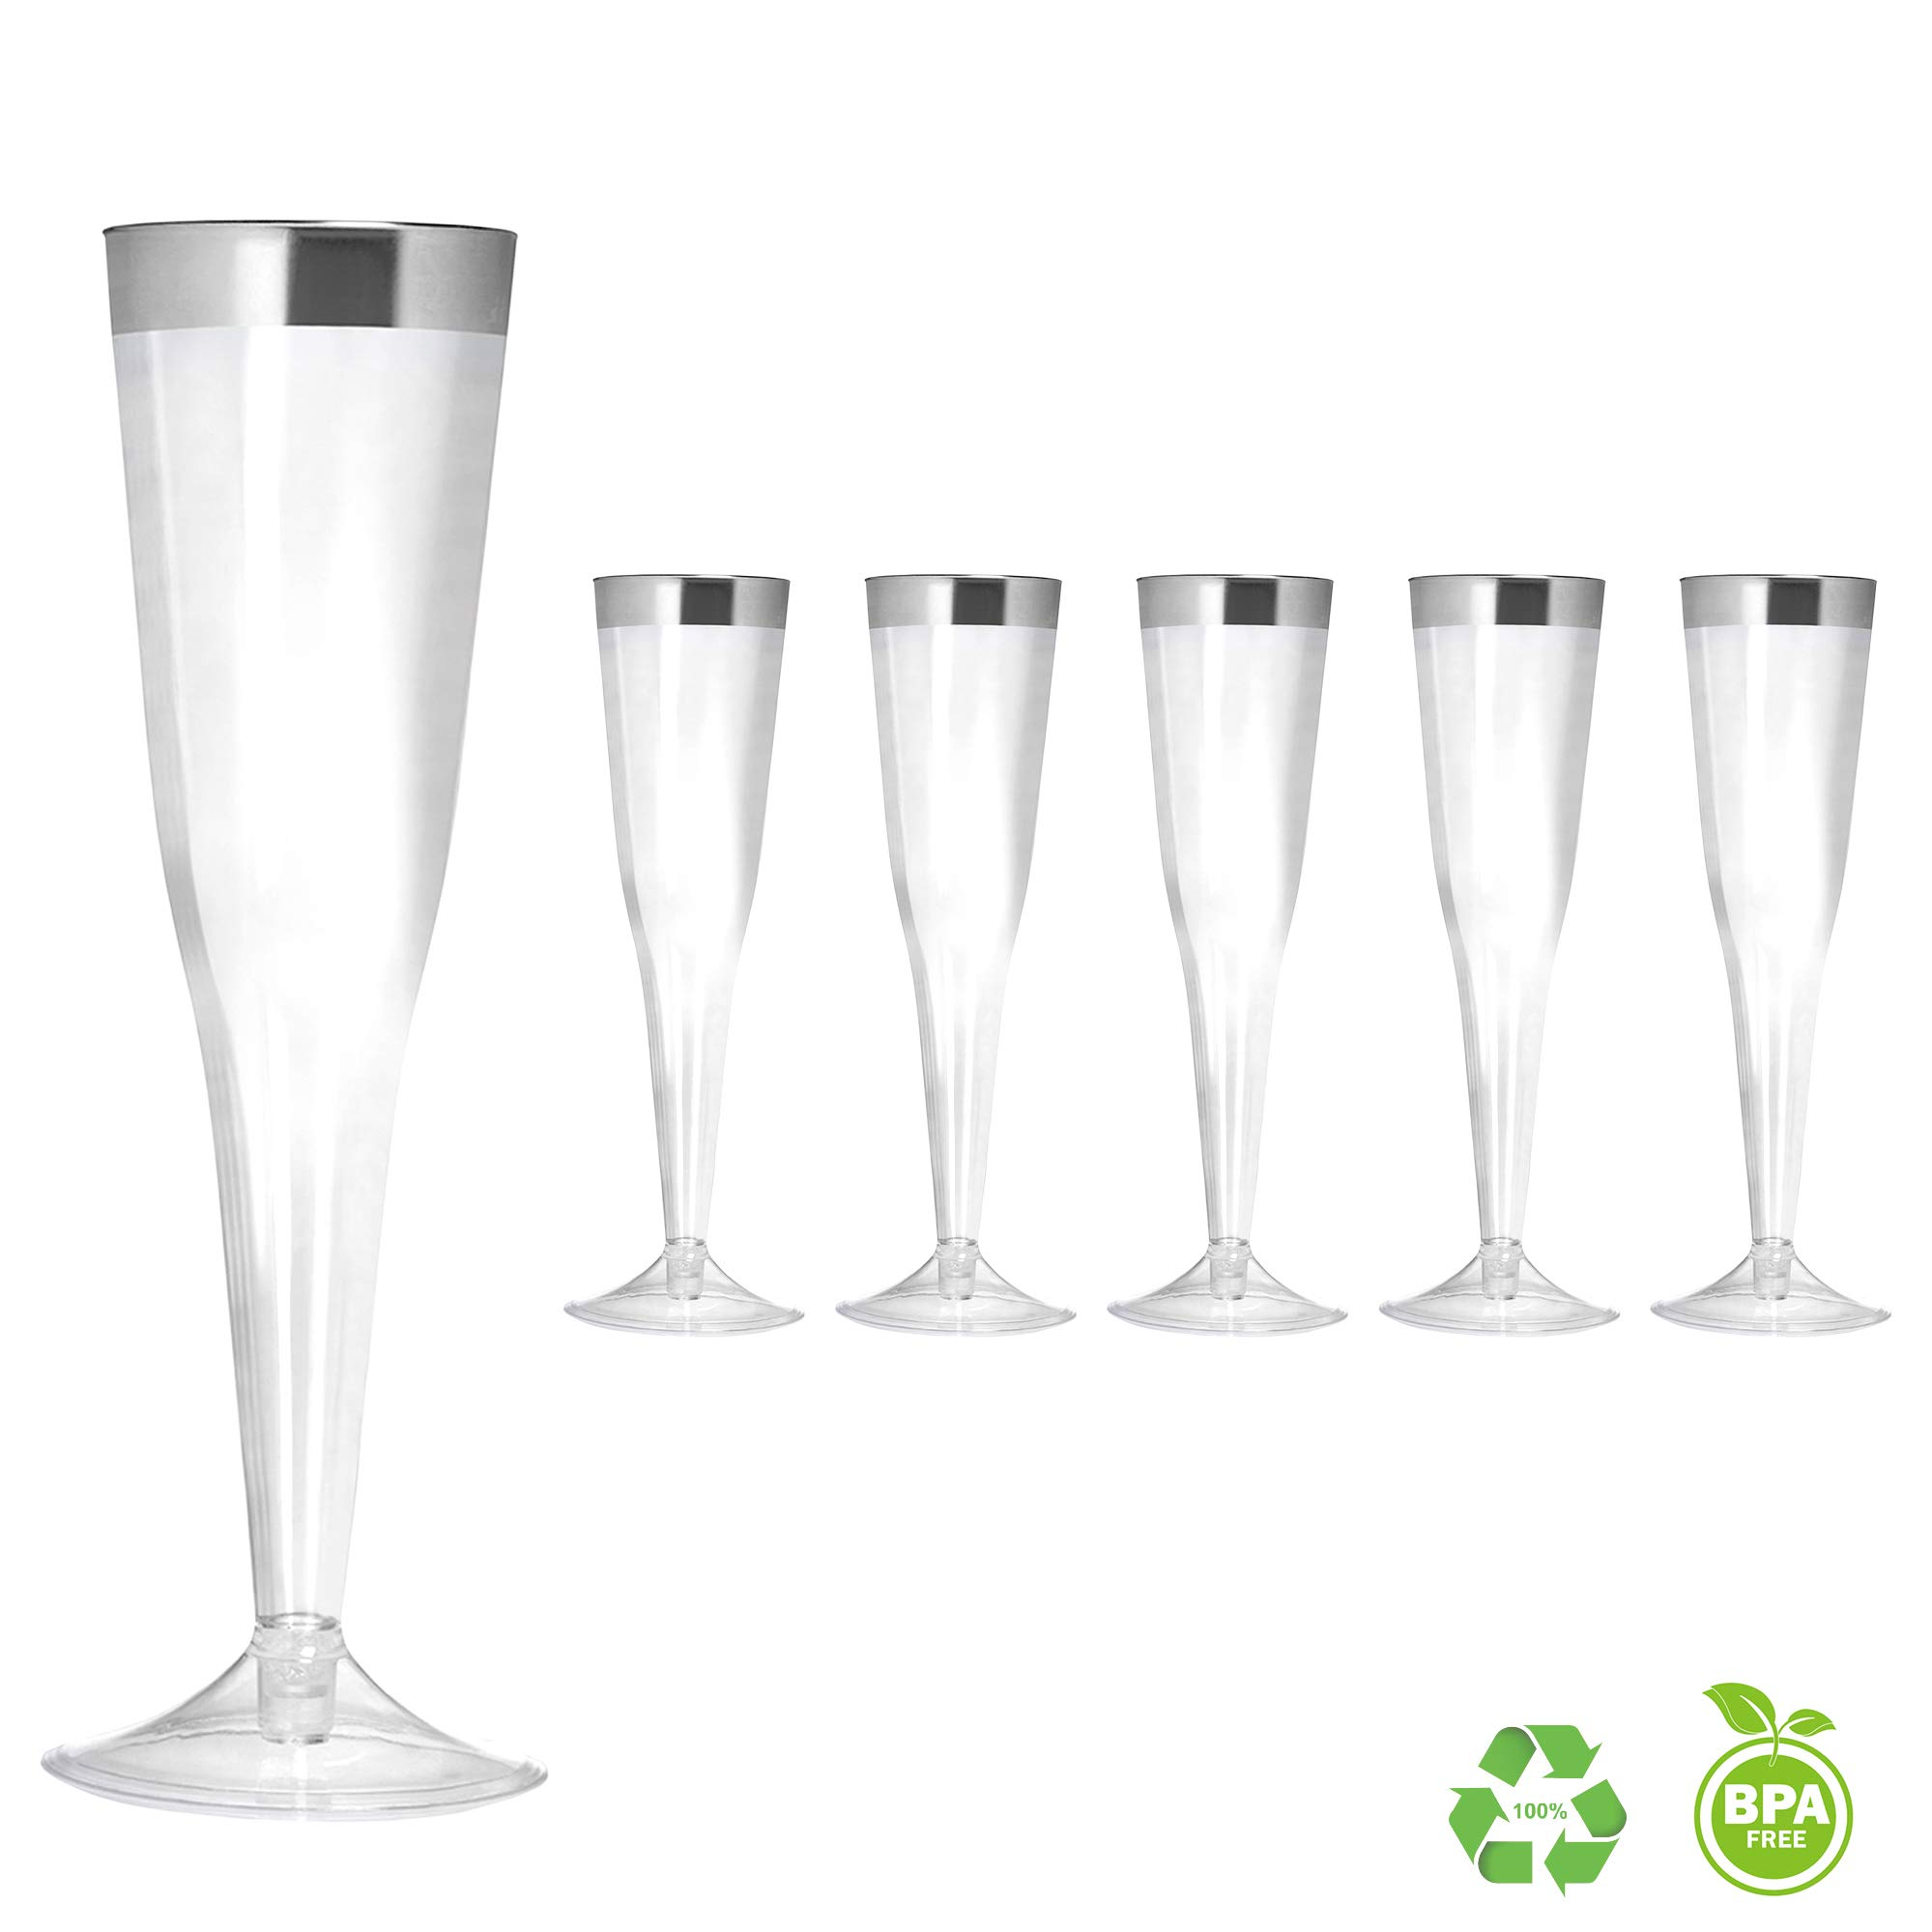 Clear Plastic Disposable Party Cups 6 Ounce Champagne Flutes (50 Pack) Fancy 6oz Disposable Stemware with Silver Rim Perfect for Holiday Party Wedding and Special Occasions, Silver by Stock Your Home